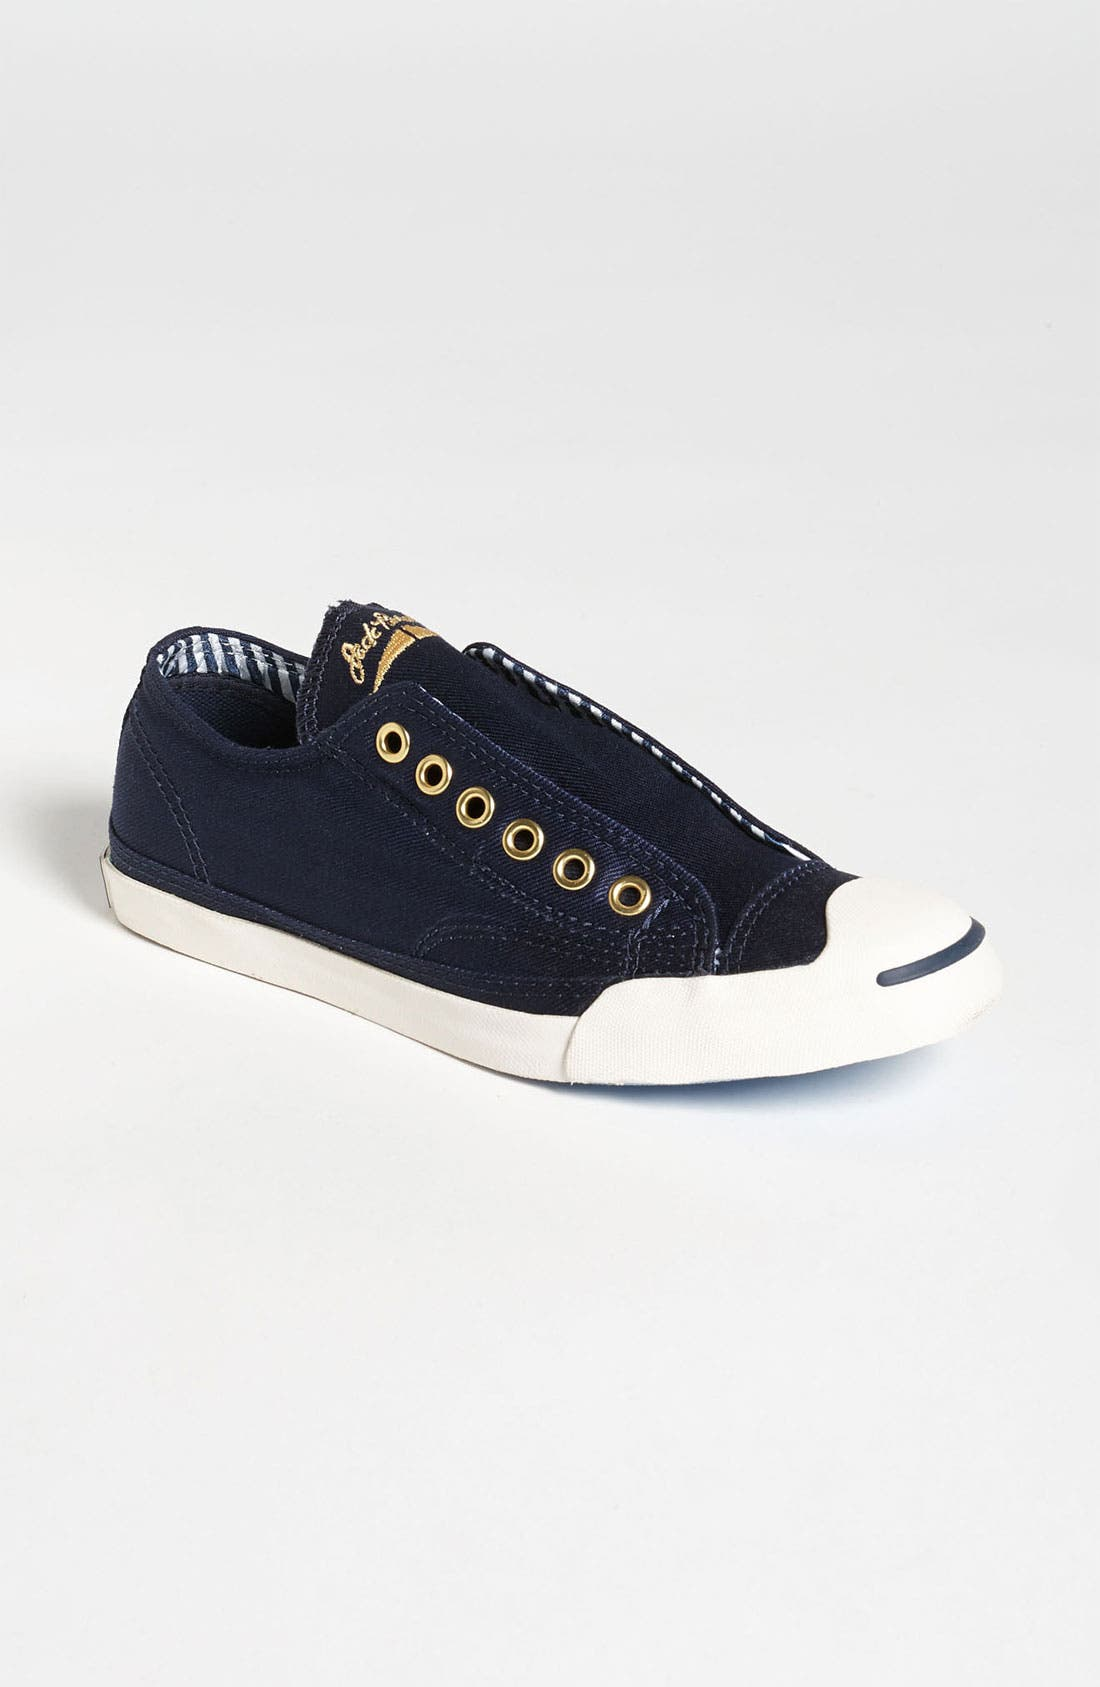 Alternate Image 1 Selected - Converse 'Jack Purcell' Twill Sneaker (Women)